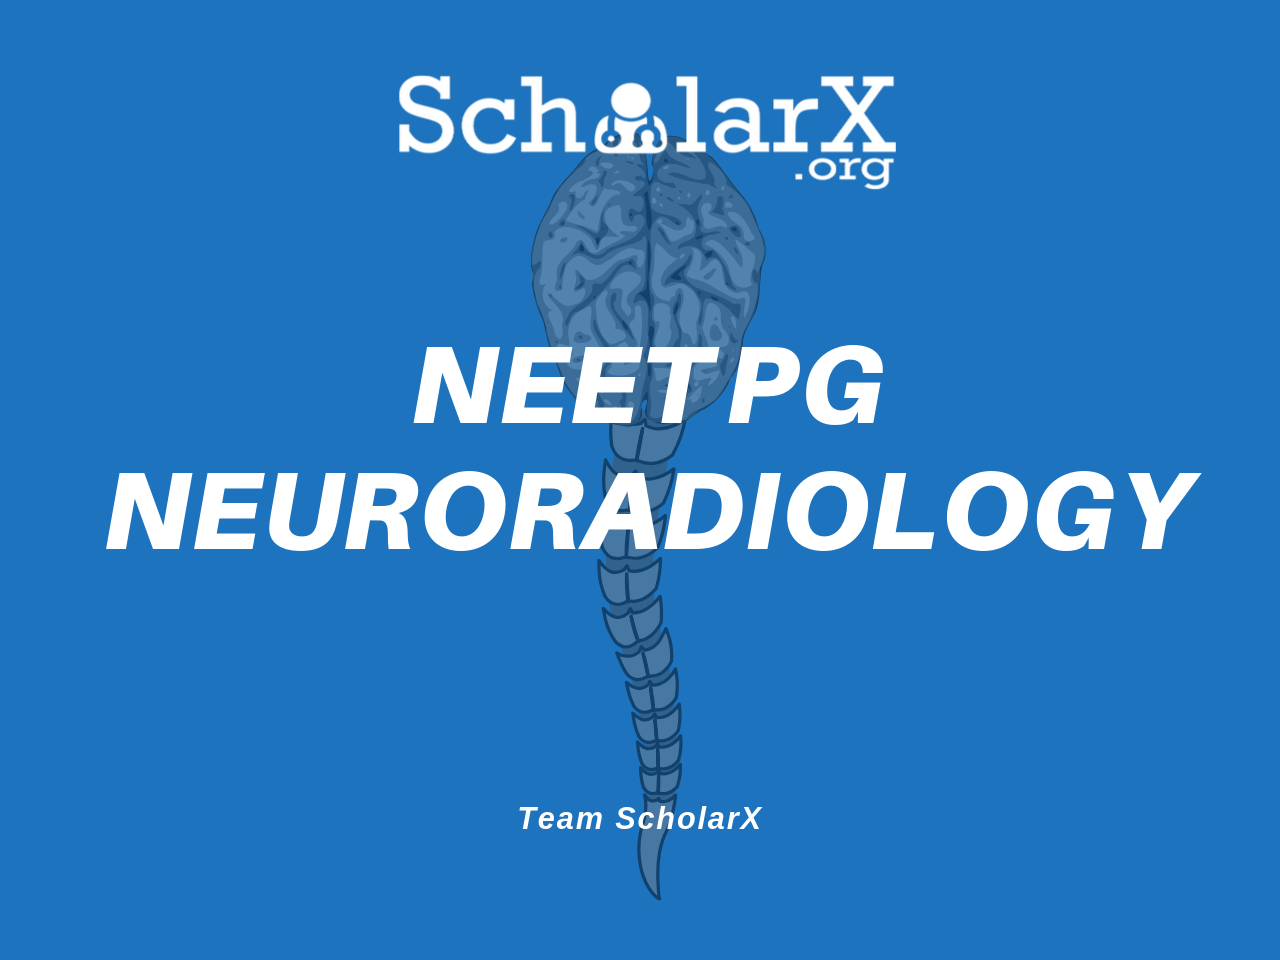 NEET PG Neuroradiology